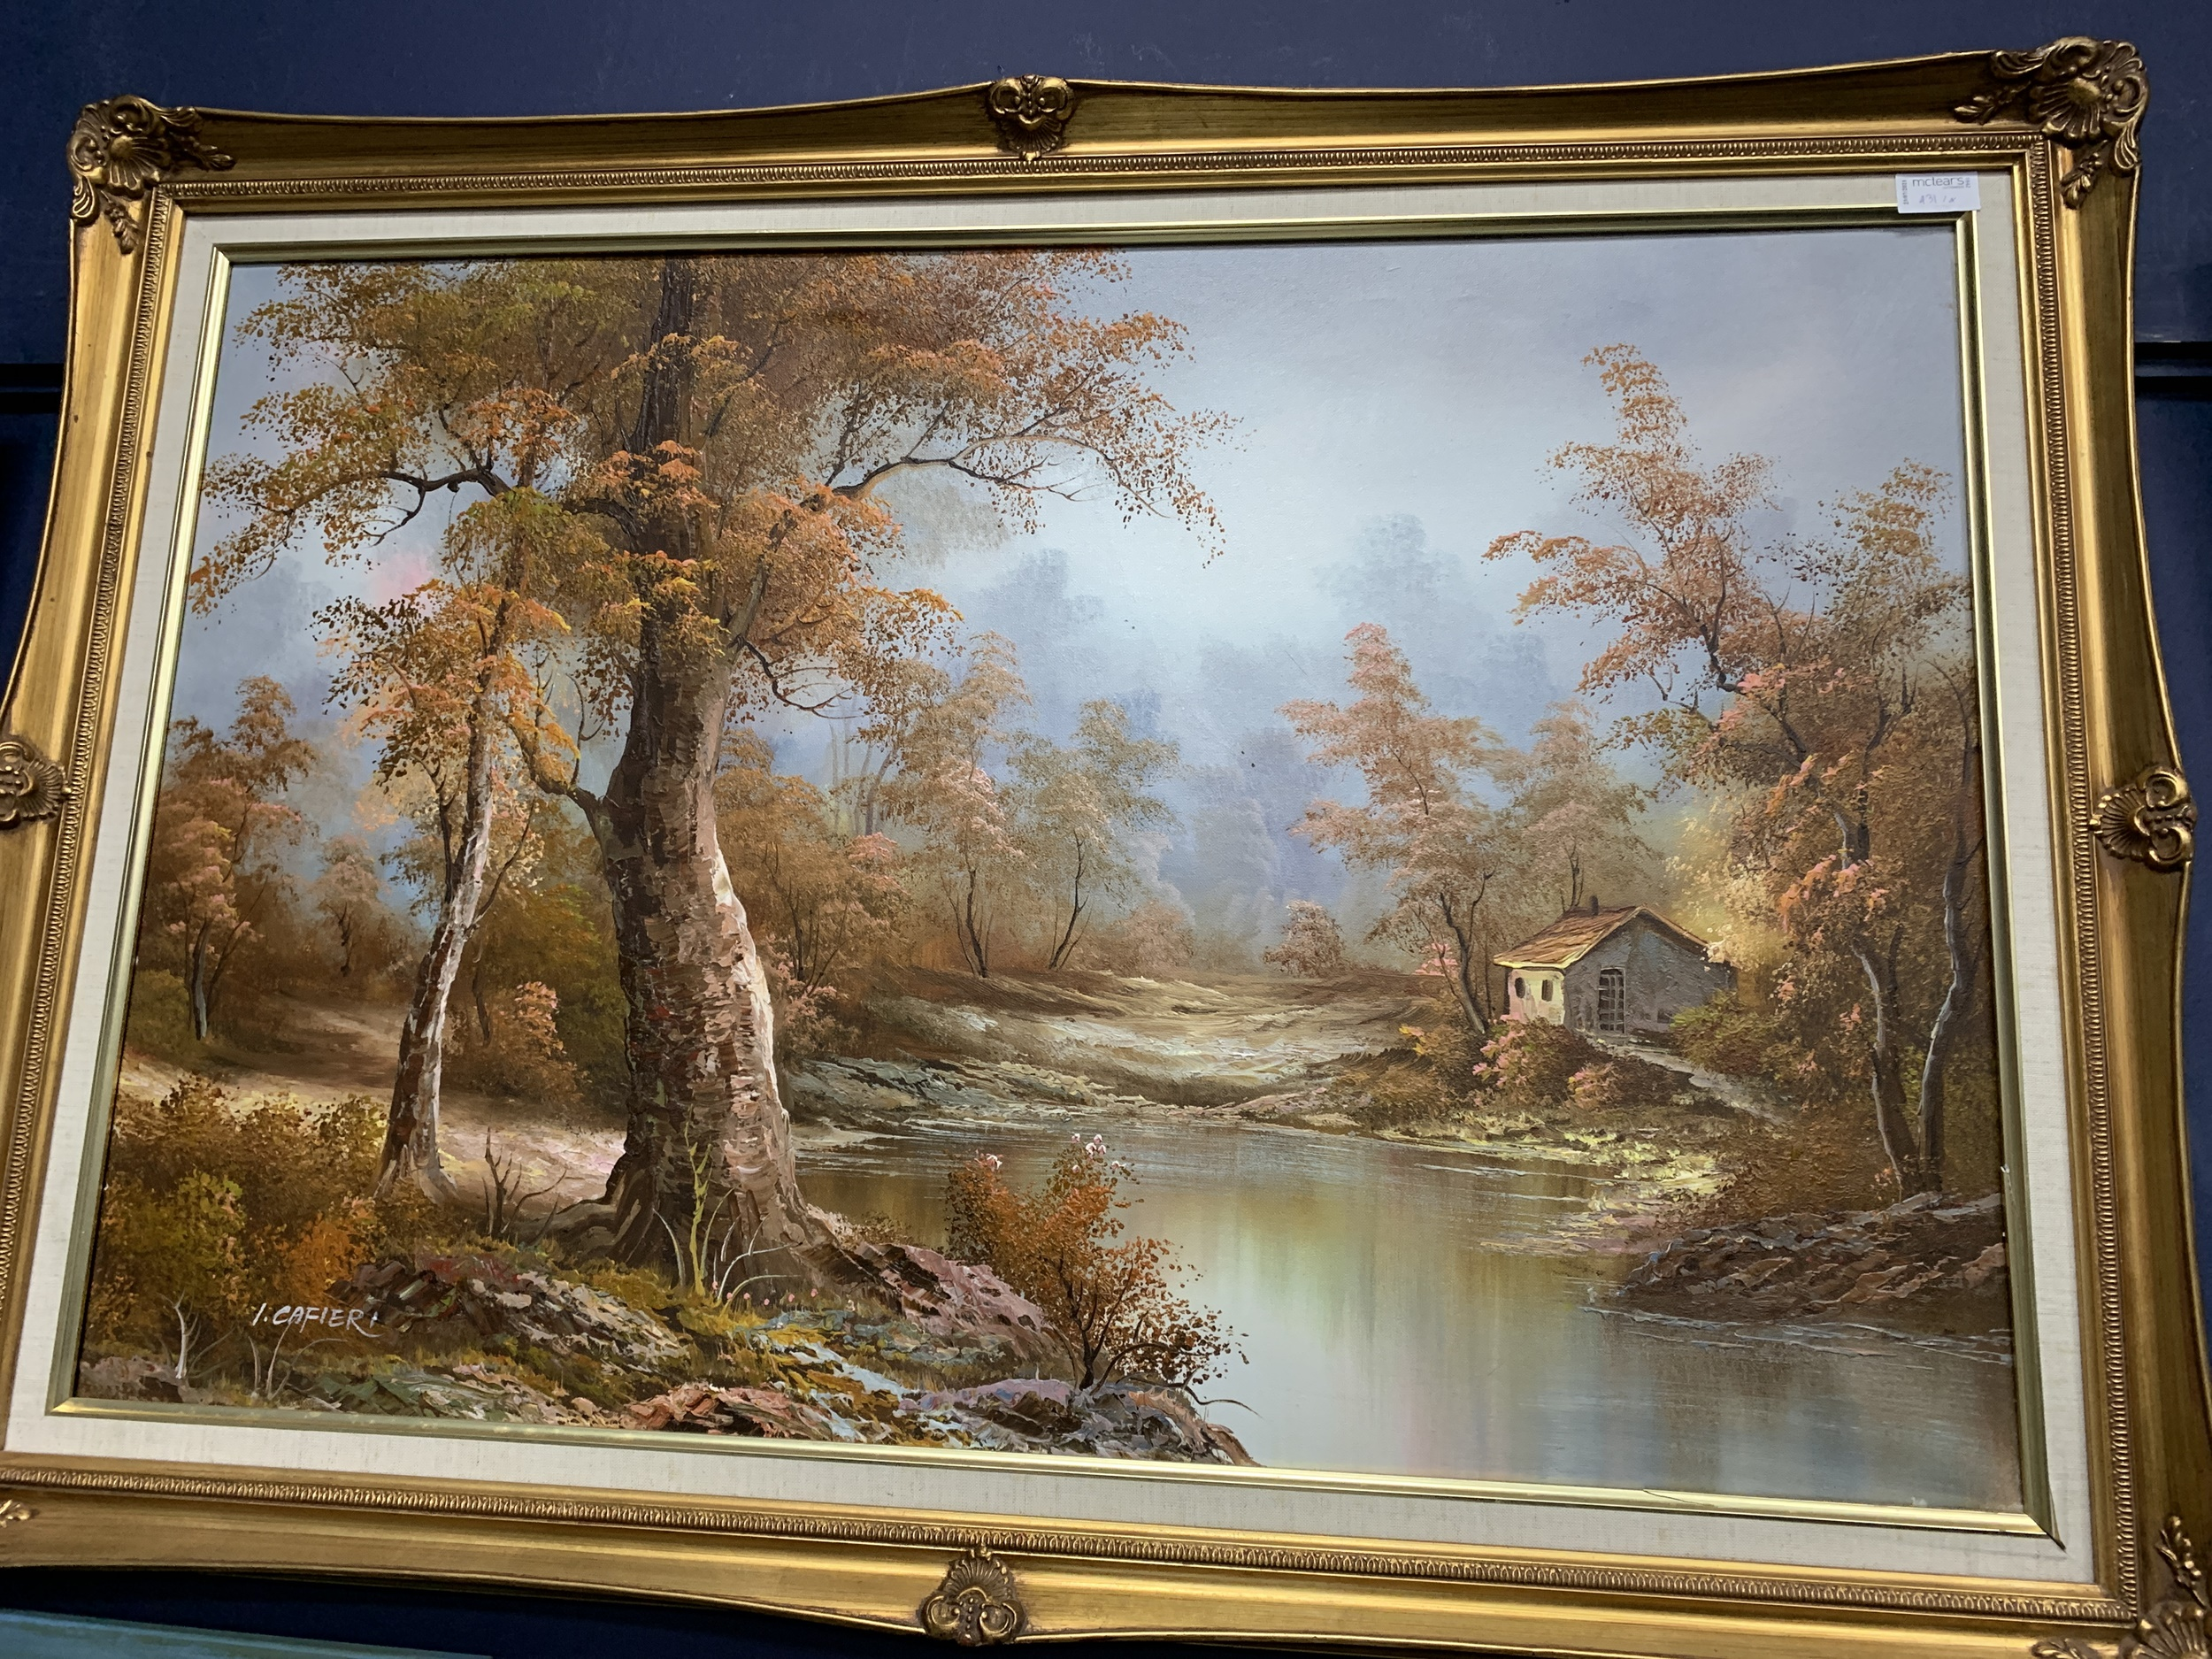 GARRY BURLA, BOATING SCENE, FRAMED ACRYLIC PAINTING, ALONG WITH OTHER PICTURES - Image 2 of 4